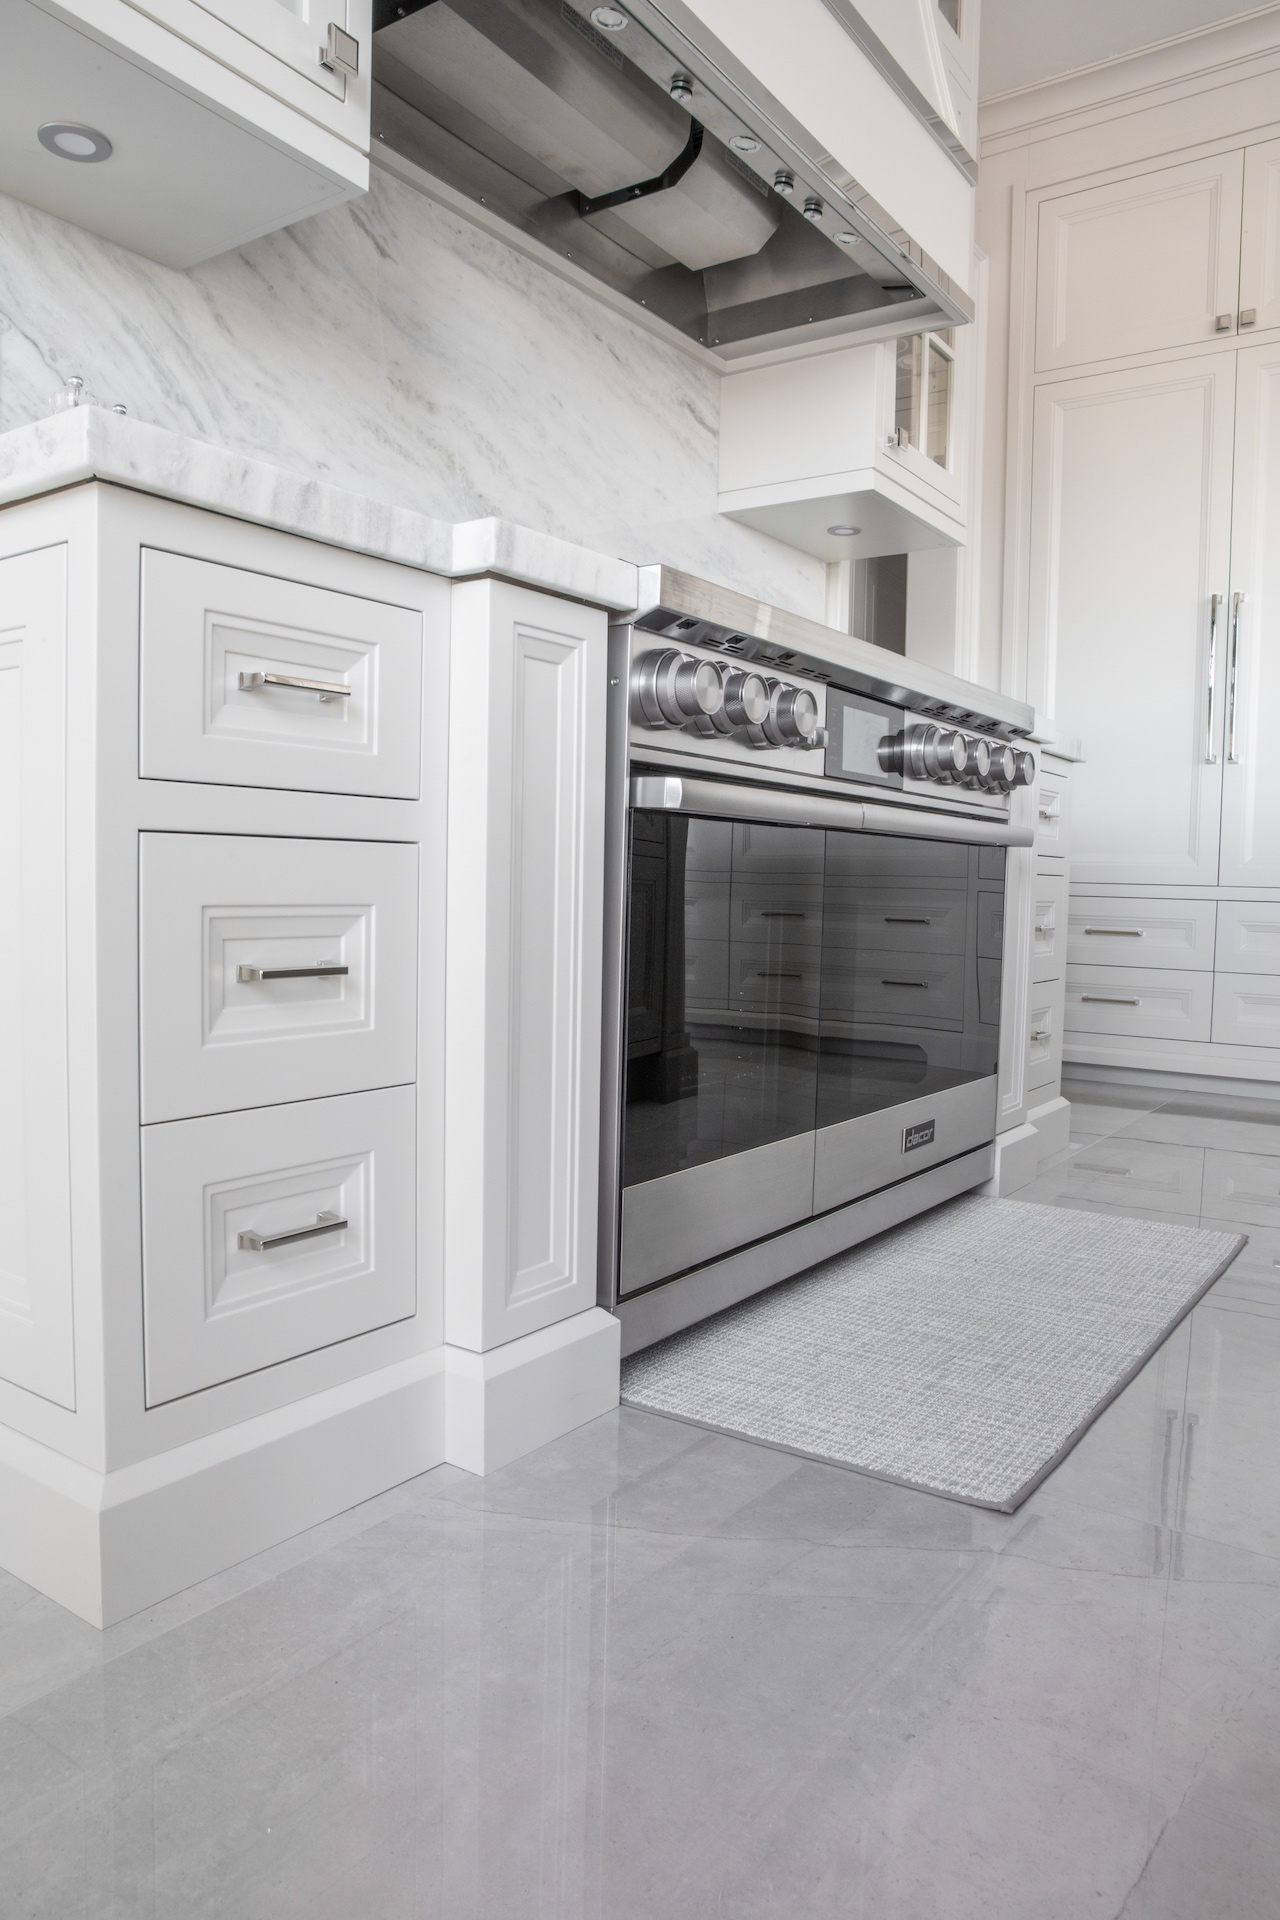 White kitchen drawers with stove and oven